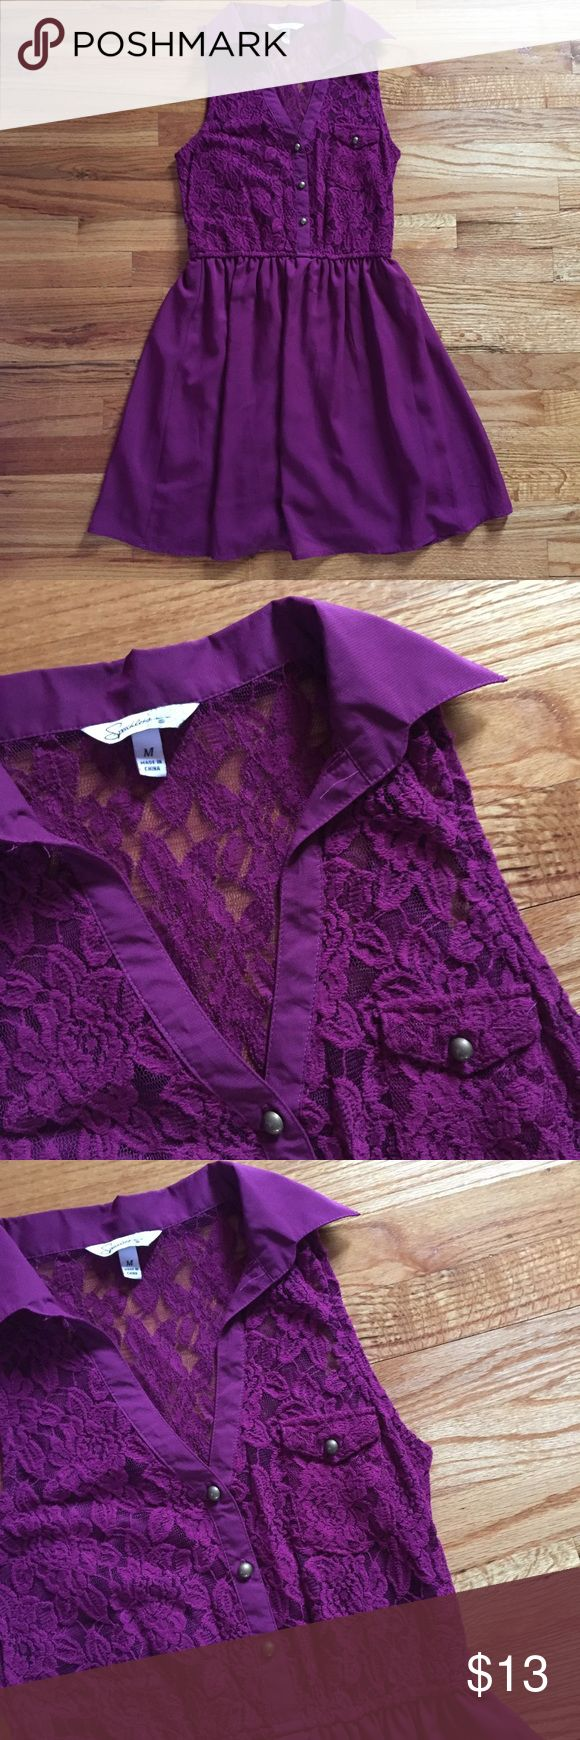 SPEECHLESS Purple Lace Dress in great condition! the top part is lace and has a attached cami underneath. super cute casual dress! brand is speechless 🌙✨ Speechless Dresses